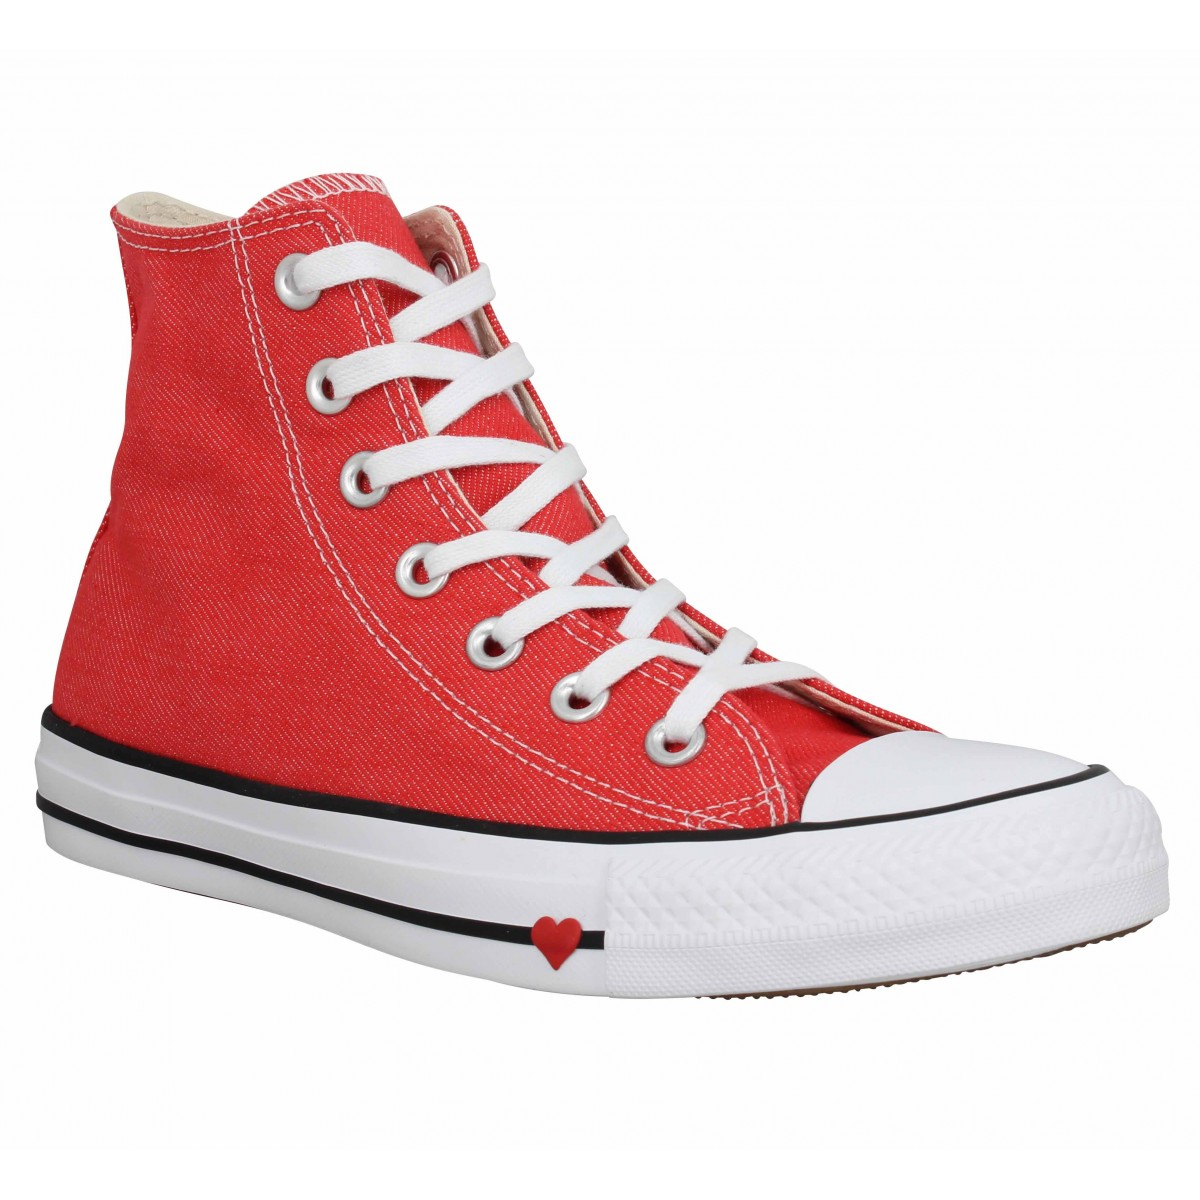 Chaussures Converse chuck taylor all star hi toile femme